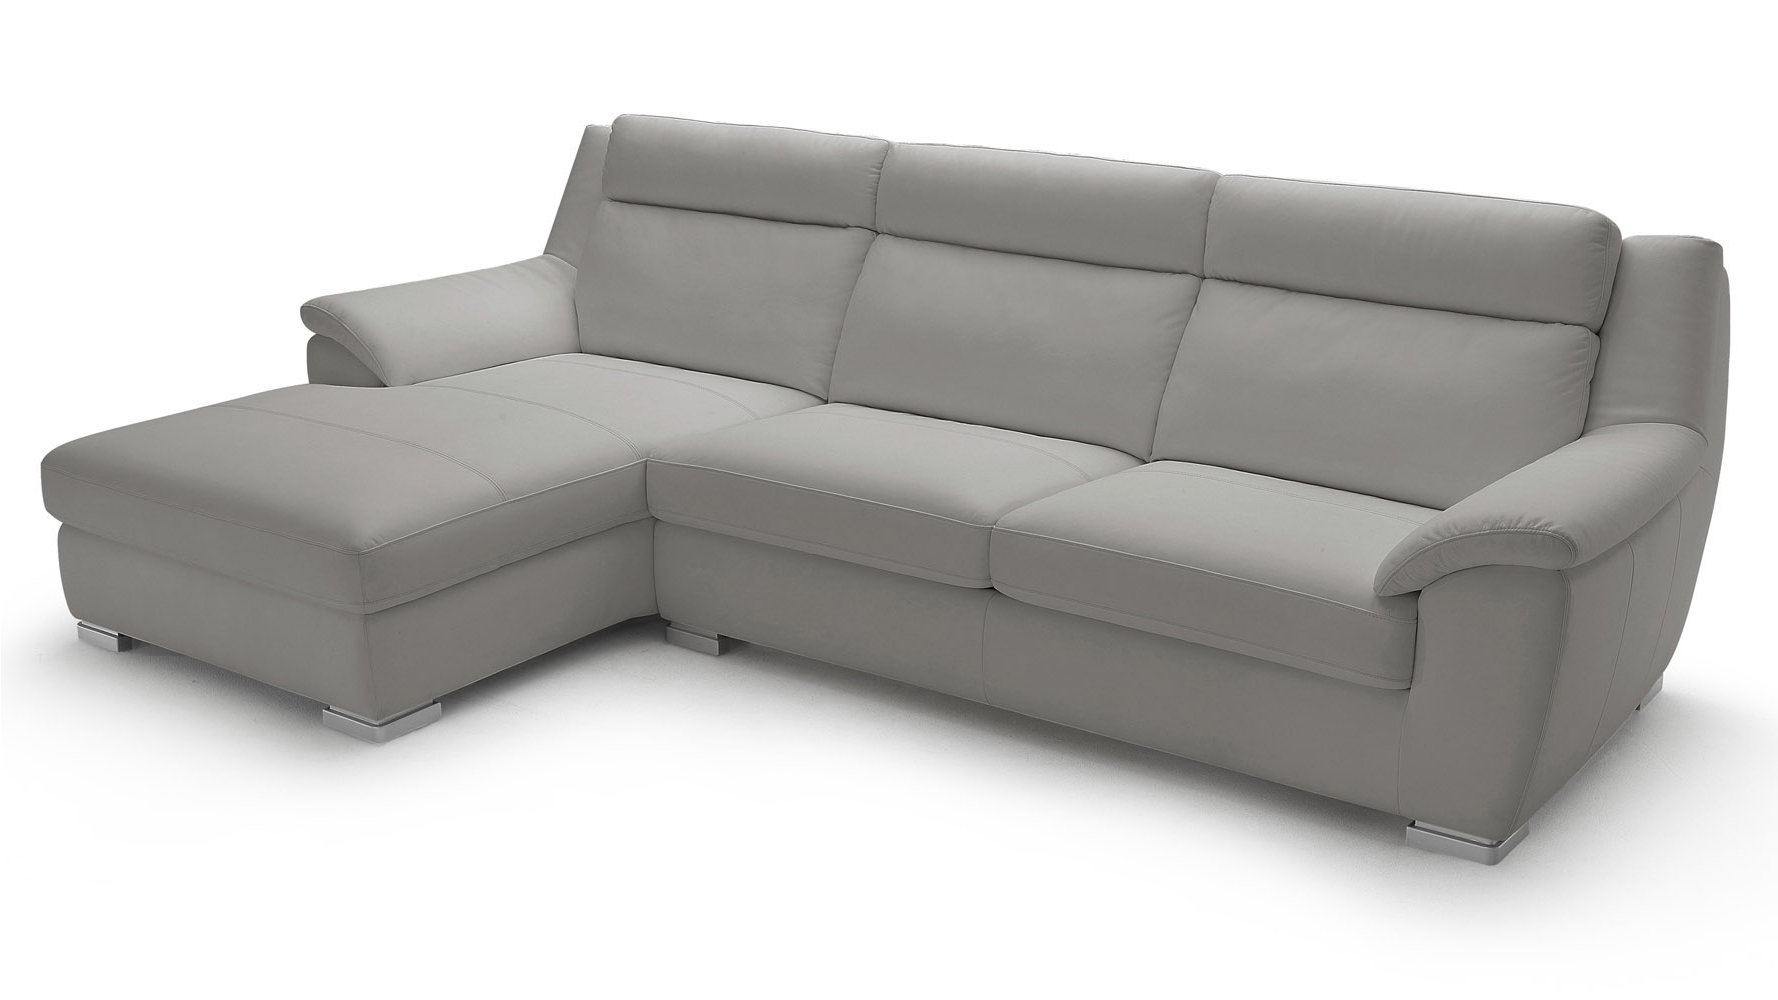 Manor Light Grey Top Grain Leather Sofa Sleeper Sectional With Throughout Well Known Sleeper Chaises (View 4 of 15)